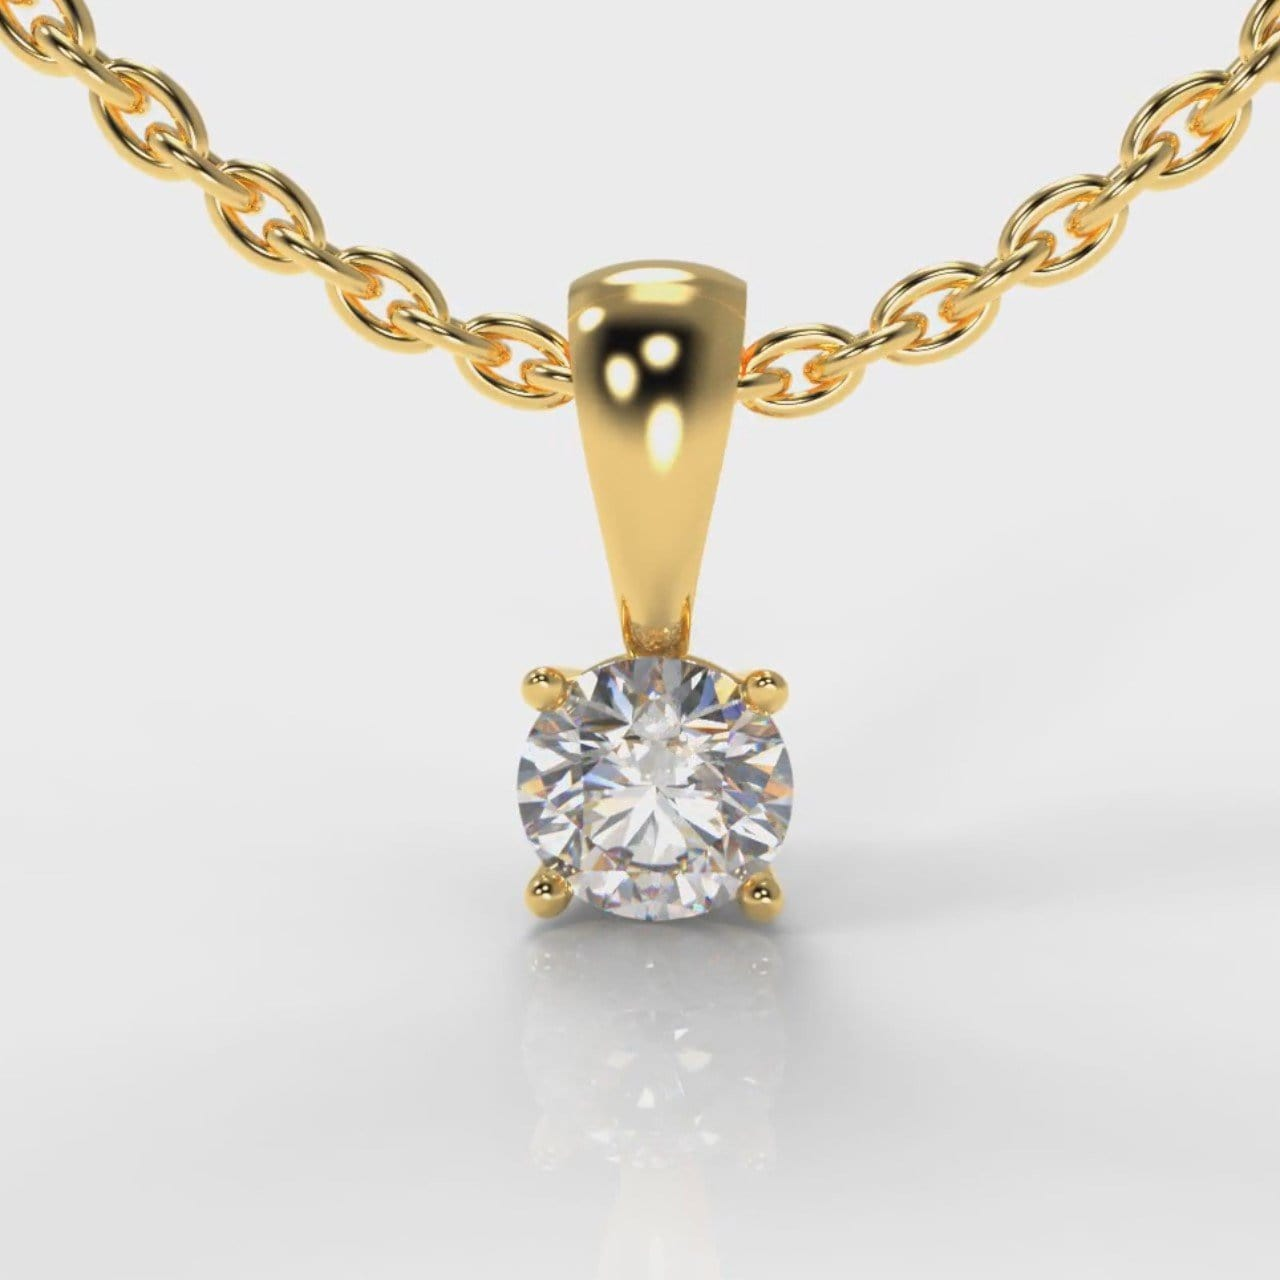 Four Claw Diamond Pendant (Lab Grown Diamond) - Yellow Gold